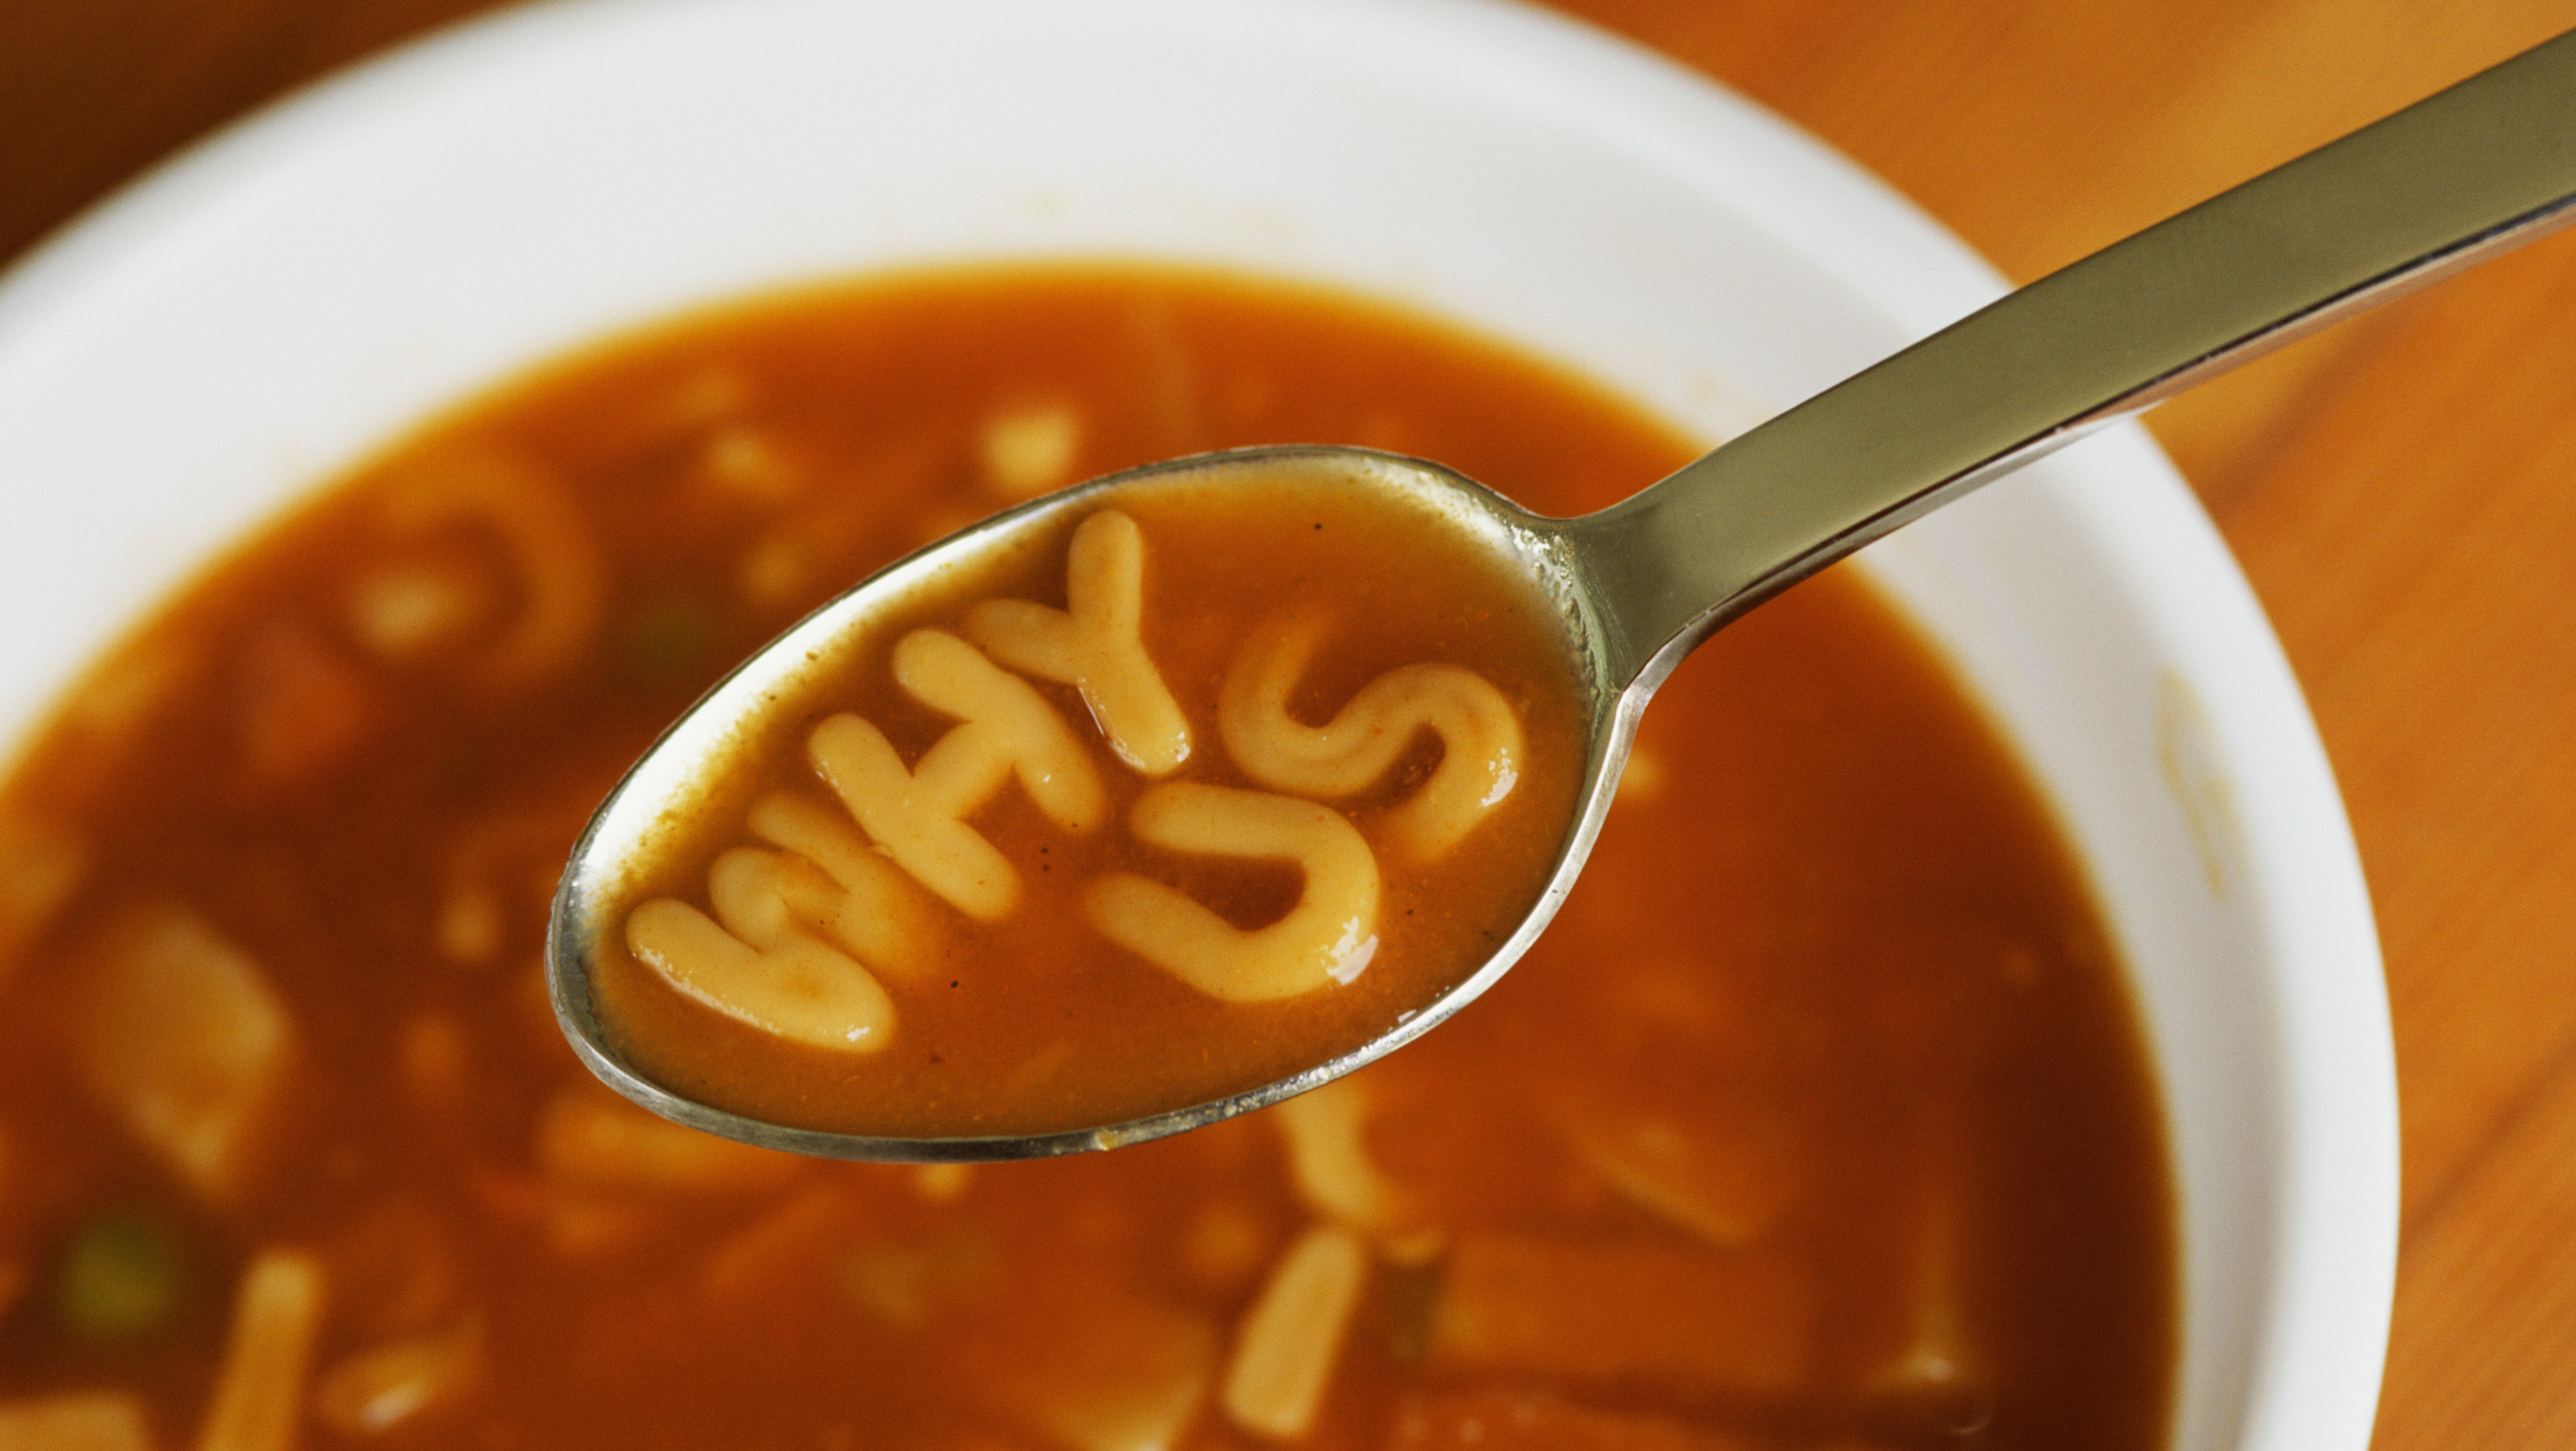 Nearly 10,000 US Kids A Year Are Attacked By Soup